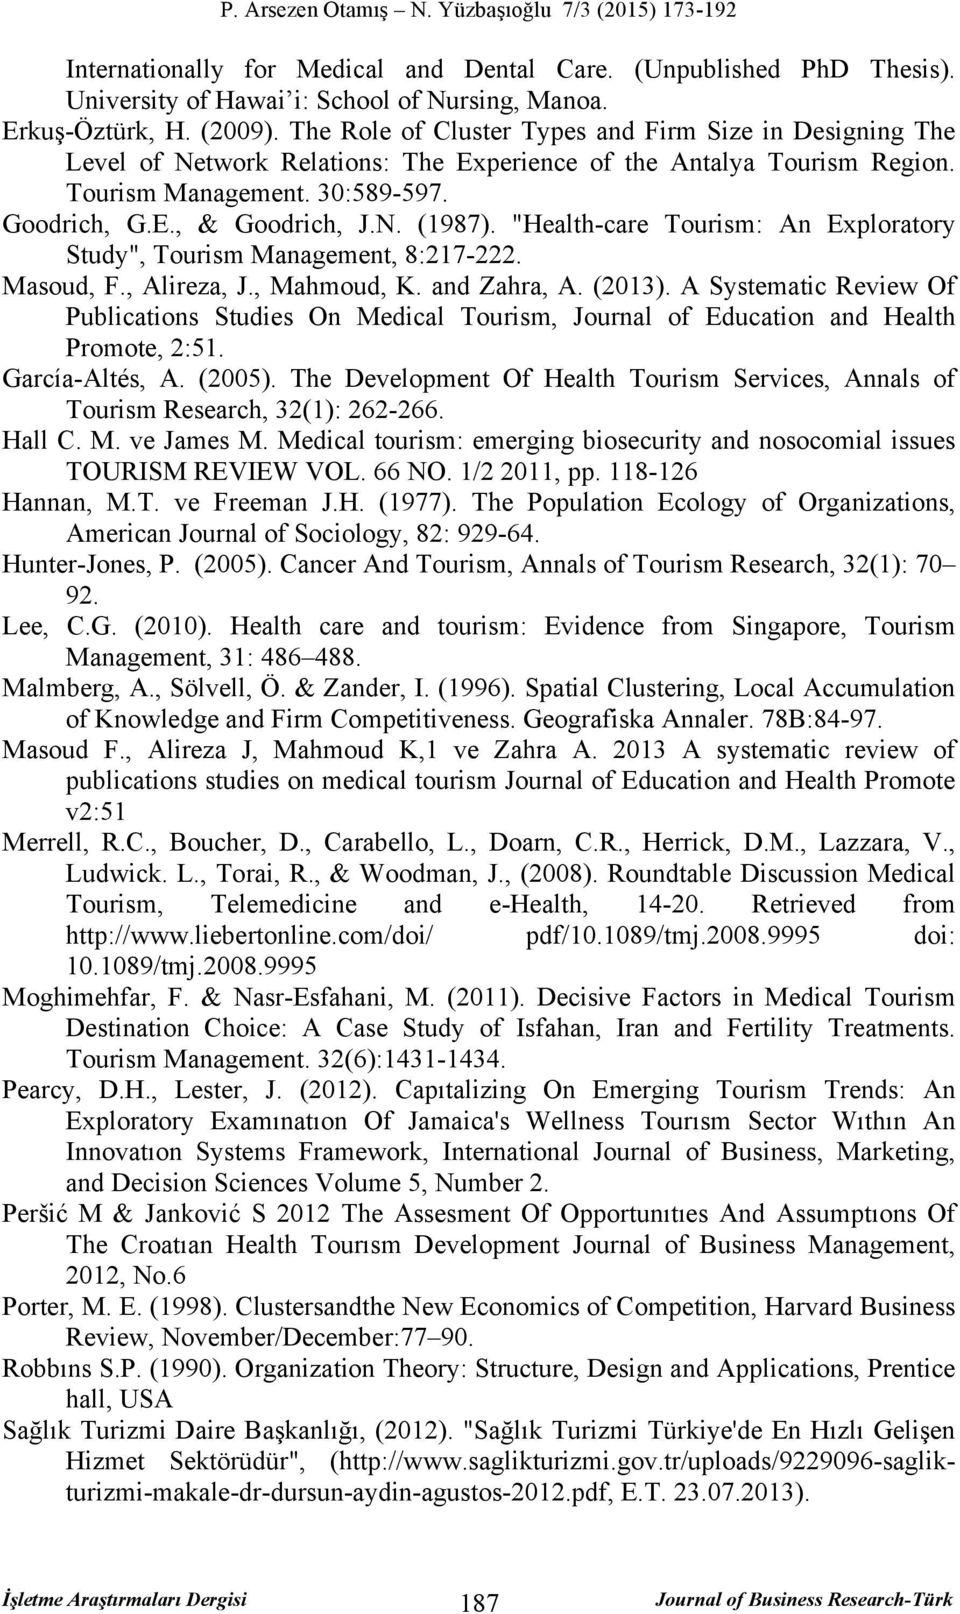 """Health-care Tourism: An Exploratory Study"", Tourism Management, 8:217-222. Masoud, F., Alireza, J., Mahmoud, K. and Zahra, A. (2013)."